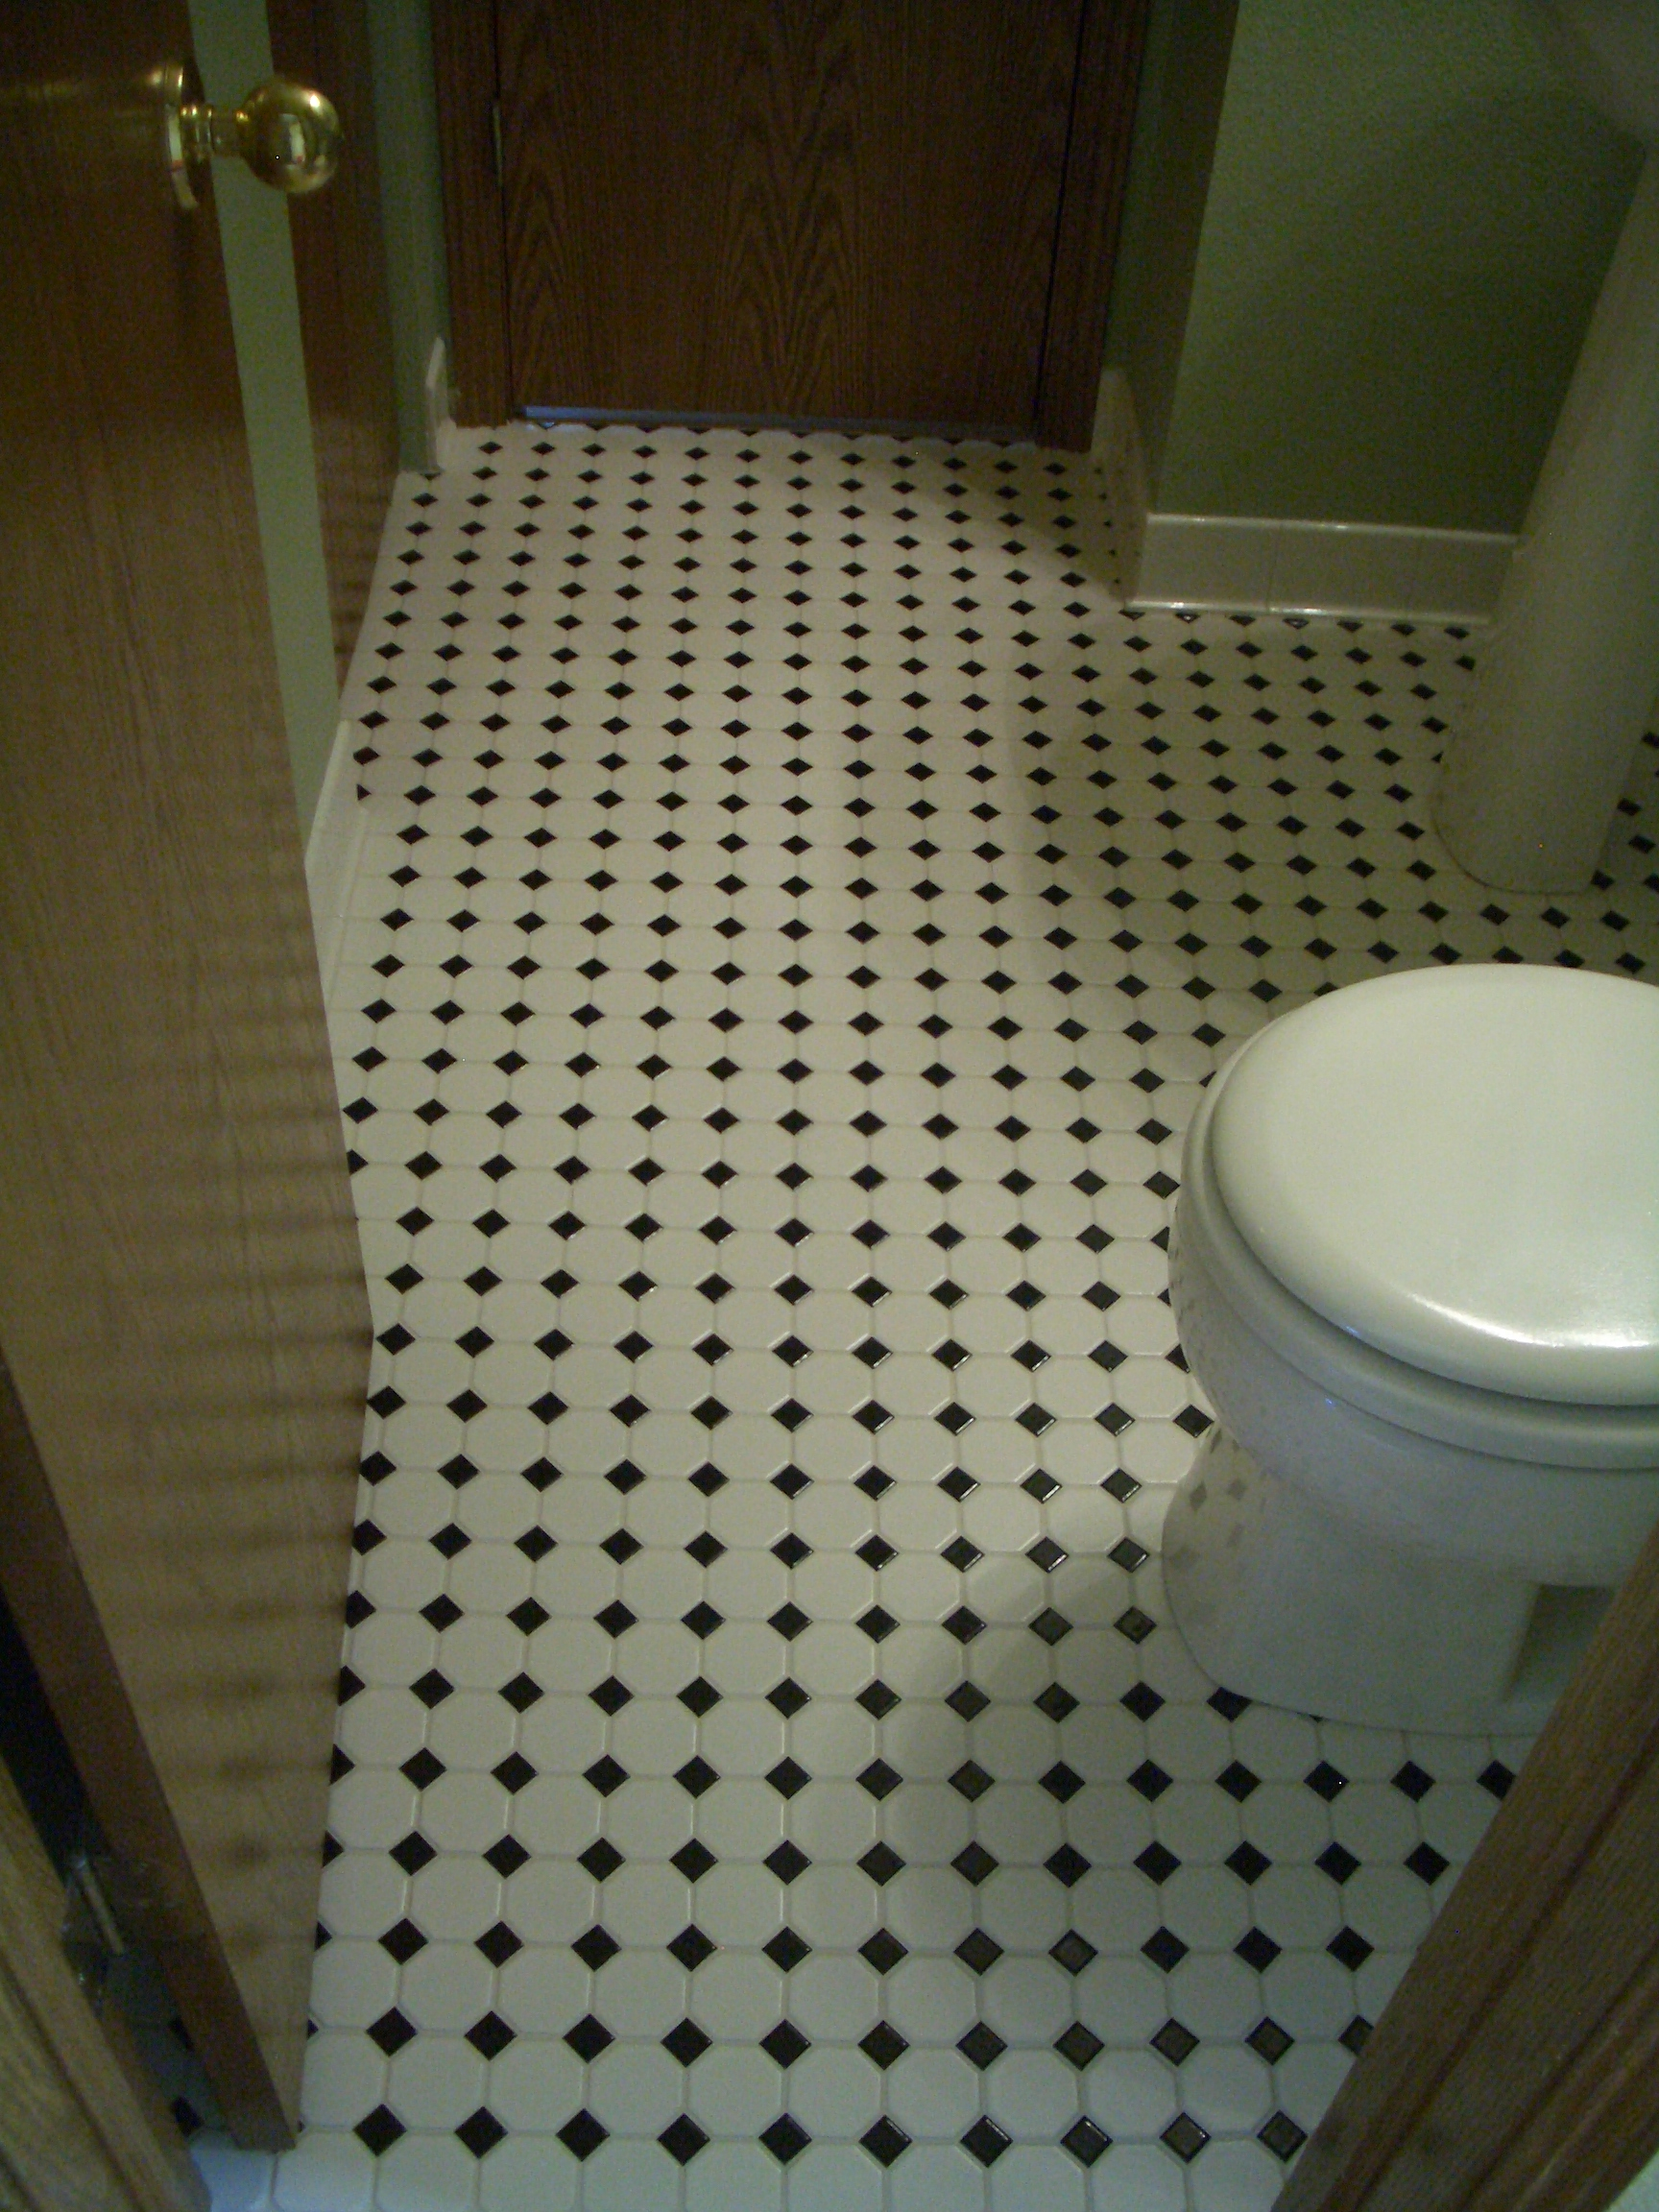 Ideas And Pictures Of Self Adhesive Vinyl Floor Tiles For Bathroom